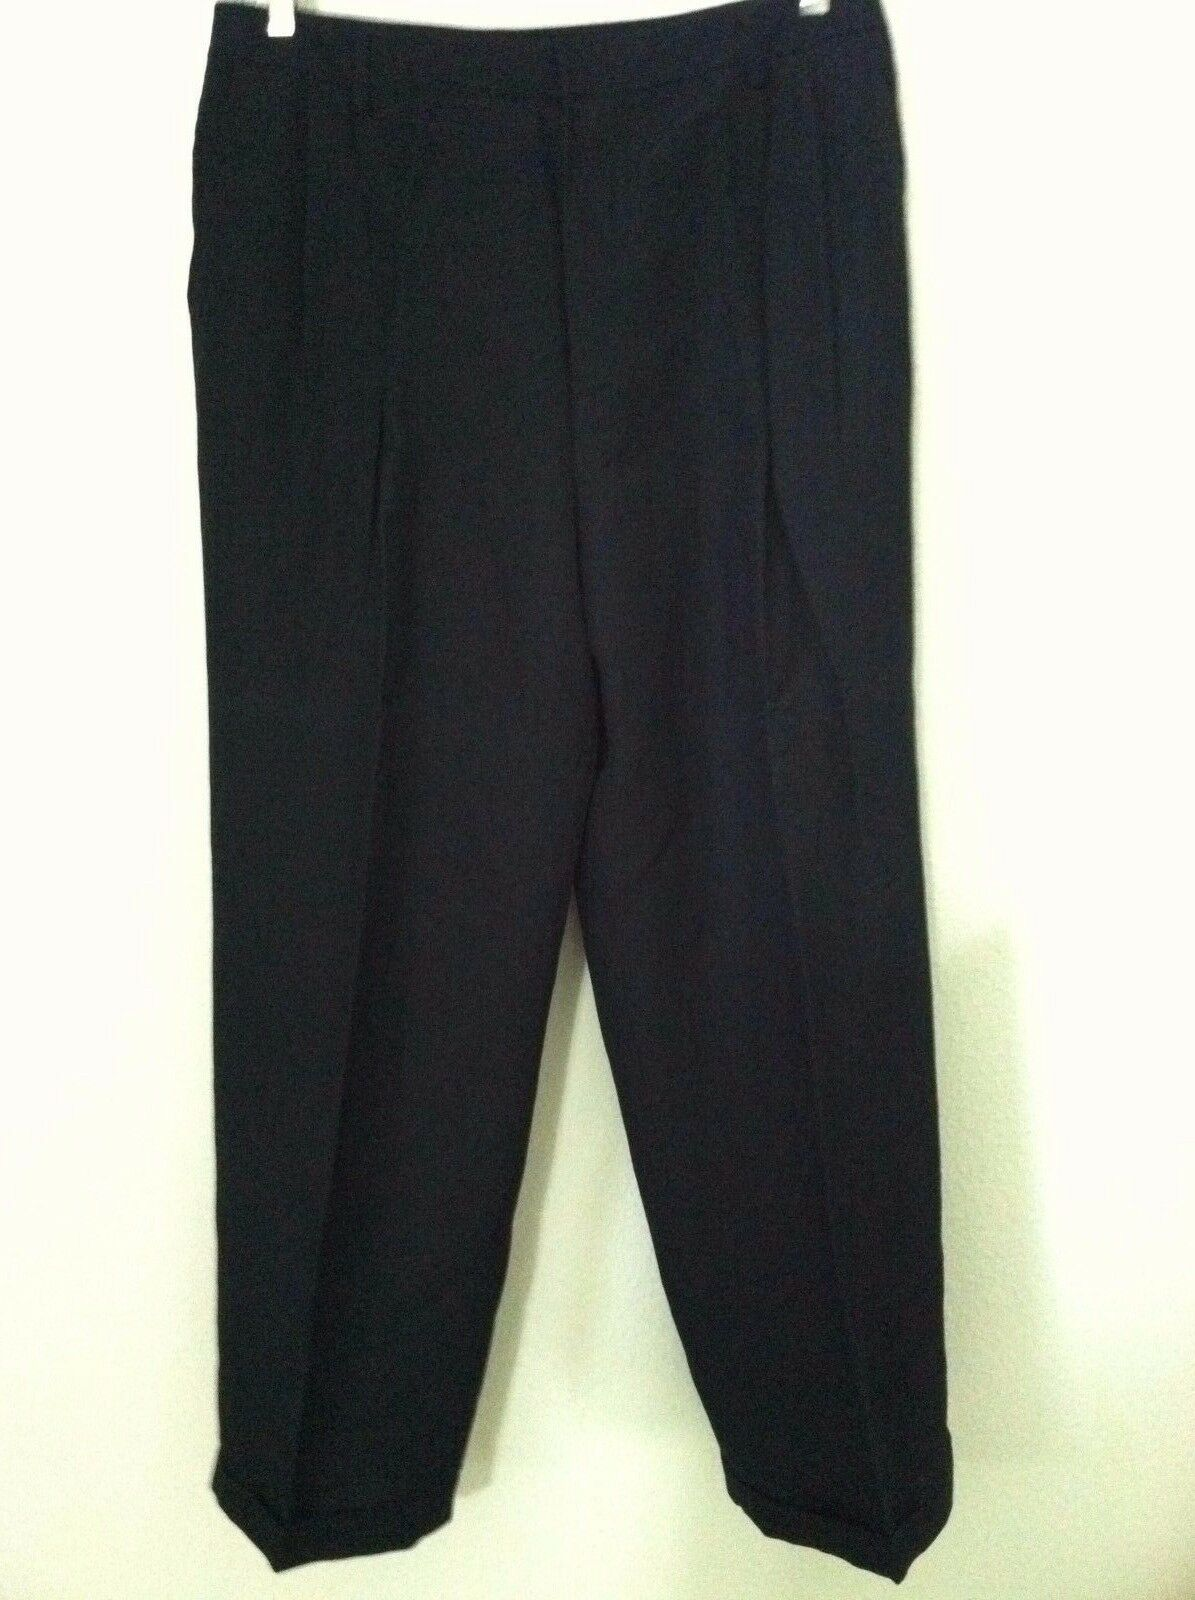 New Linda Ellen Tracy 16 damen pant navy Blau linen blen trouser pleat cuff  228